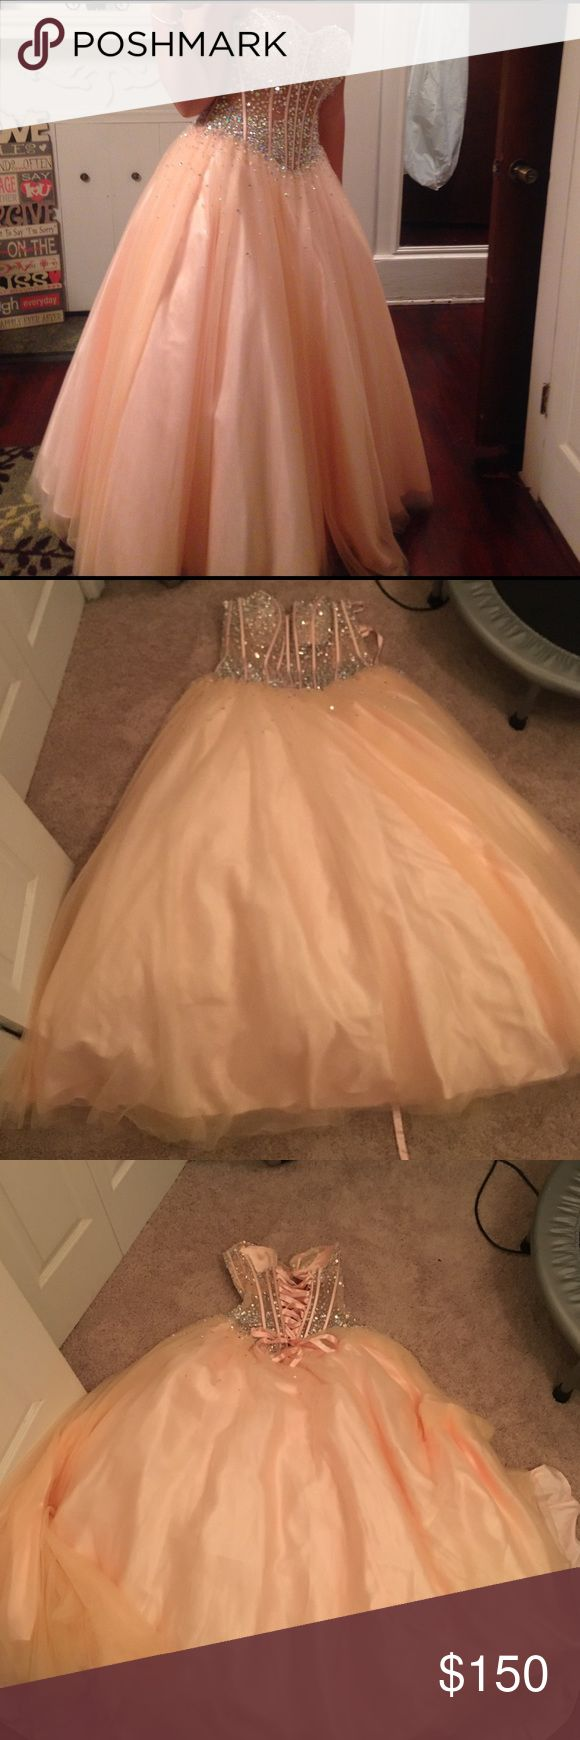 Prom dress It is only worn once prom dress got it at group USA it is a size 12 the top is shear and is laced in the back Dresses Prom